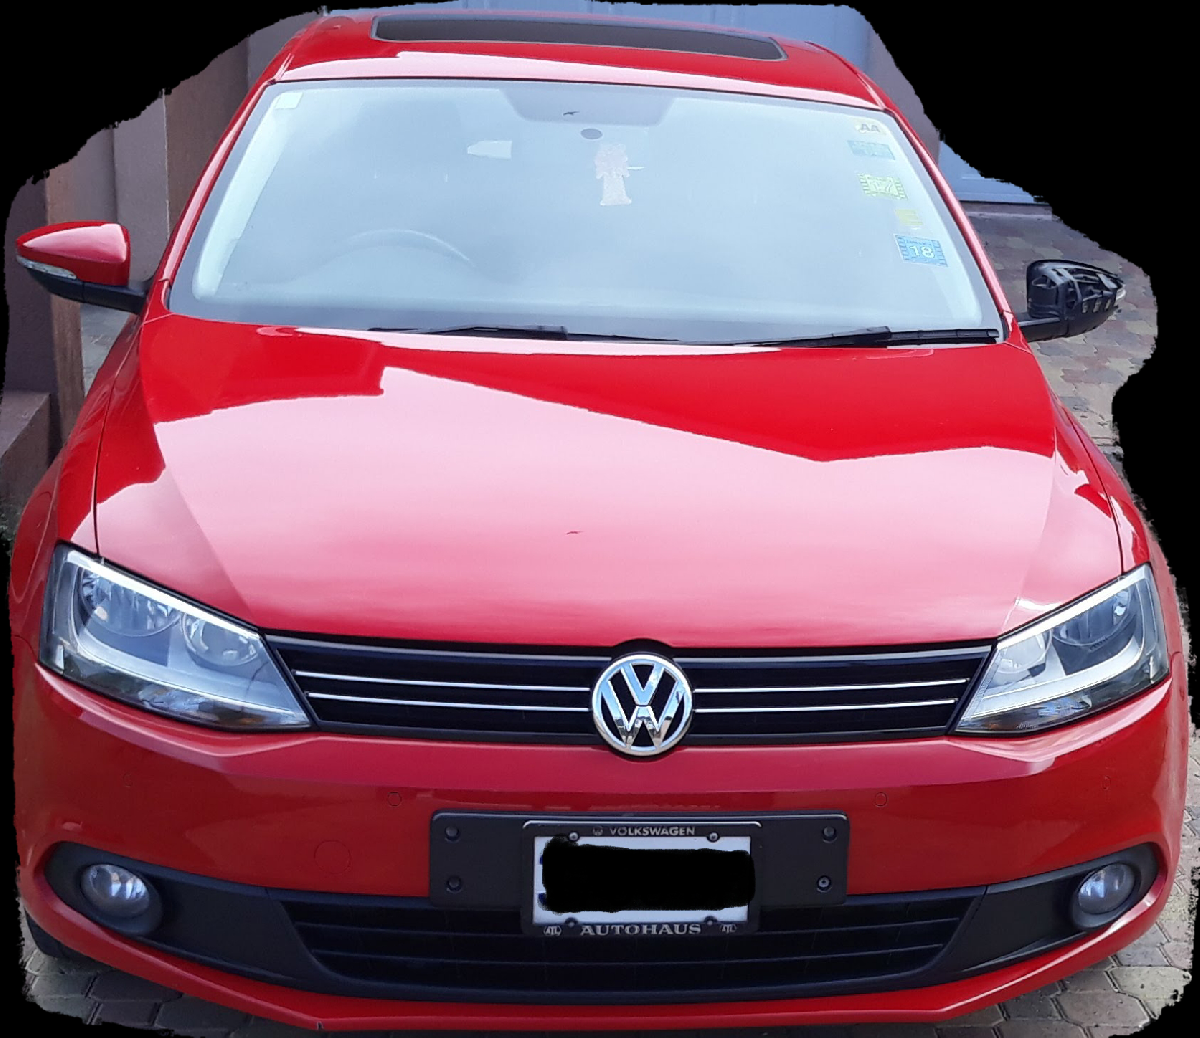 2012 VW Jetta Sport (MUST SELL!!) For Sale In Papine